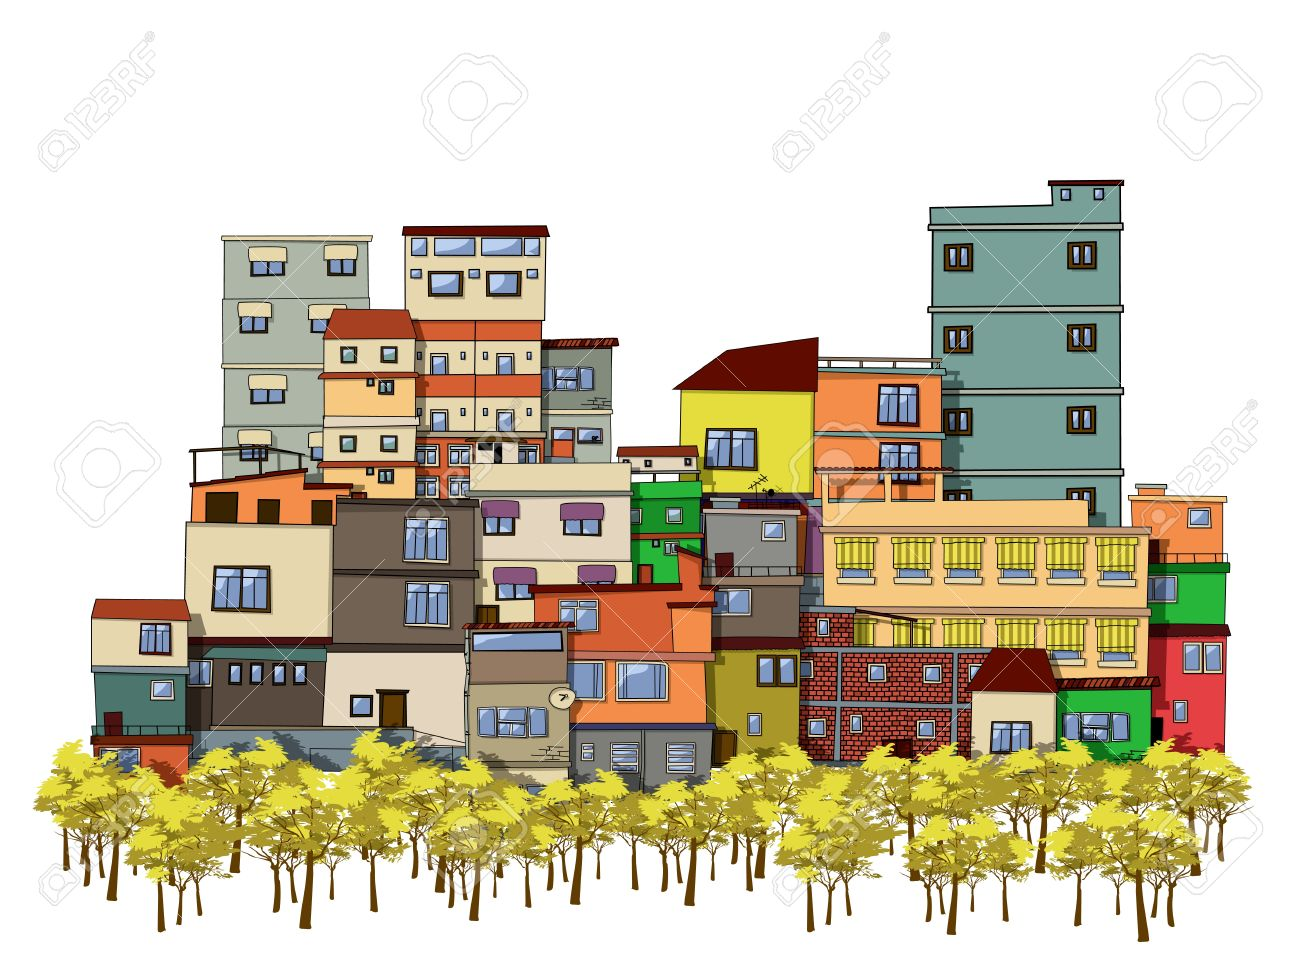 image_city-cartoon-drawing-58